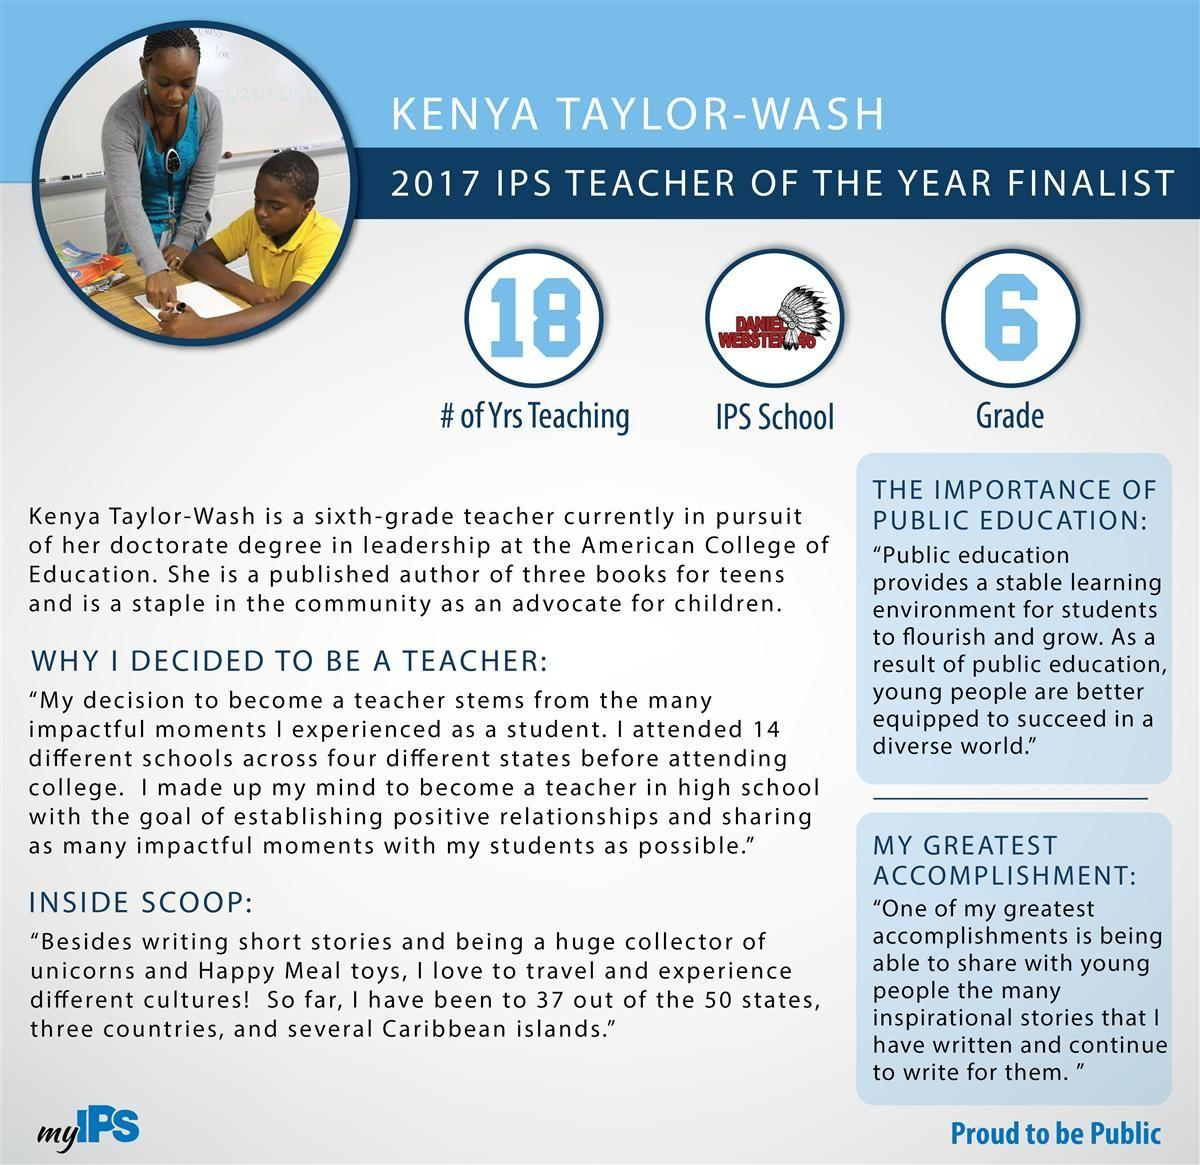 Kenya Taylor-Wash TOY Infographic